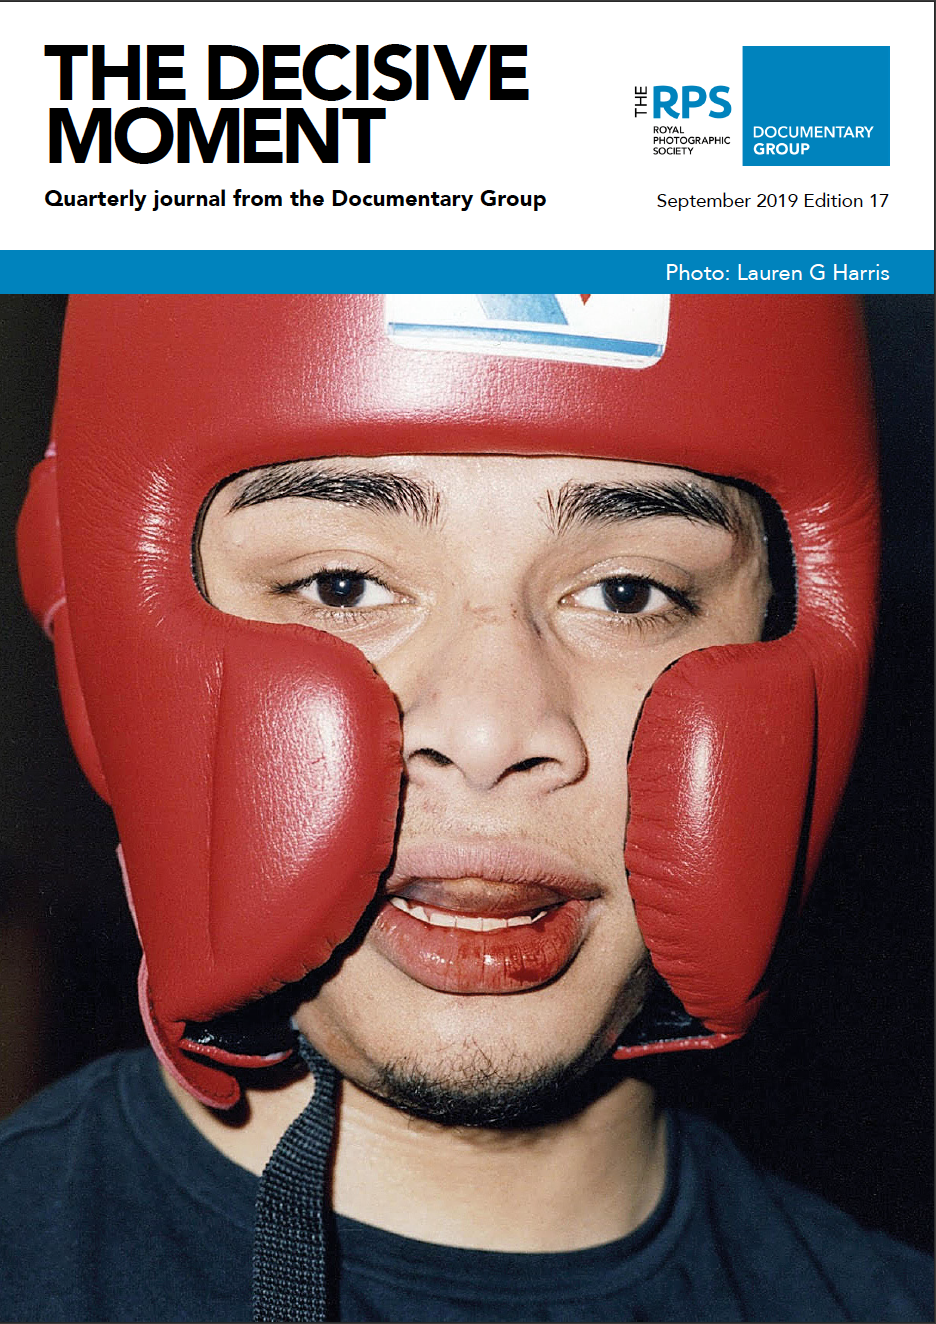 The Decisive Moment cover September 2019 Edition 17; The Boxer by Lauren G Harris